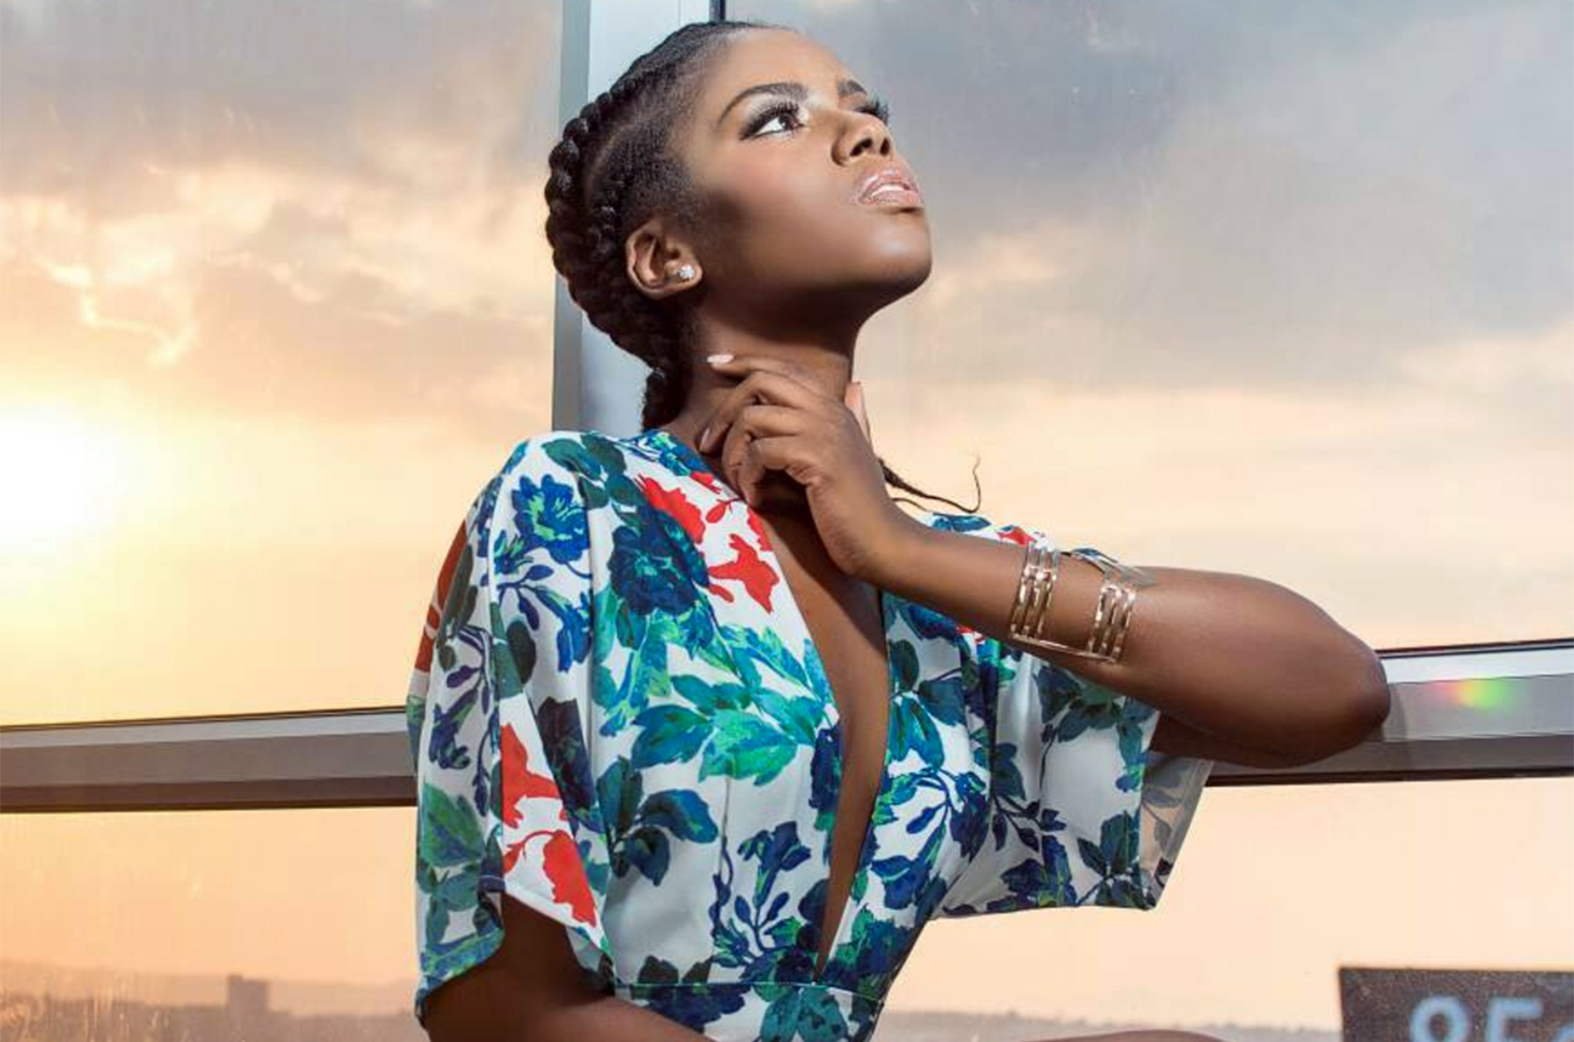 Mzvee. Photo credit: Occasions GH